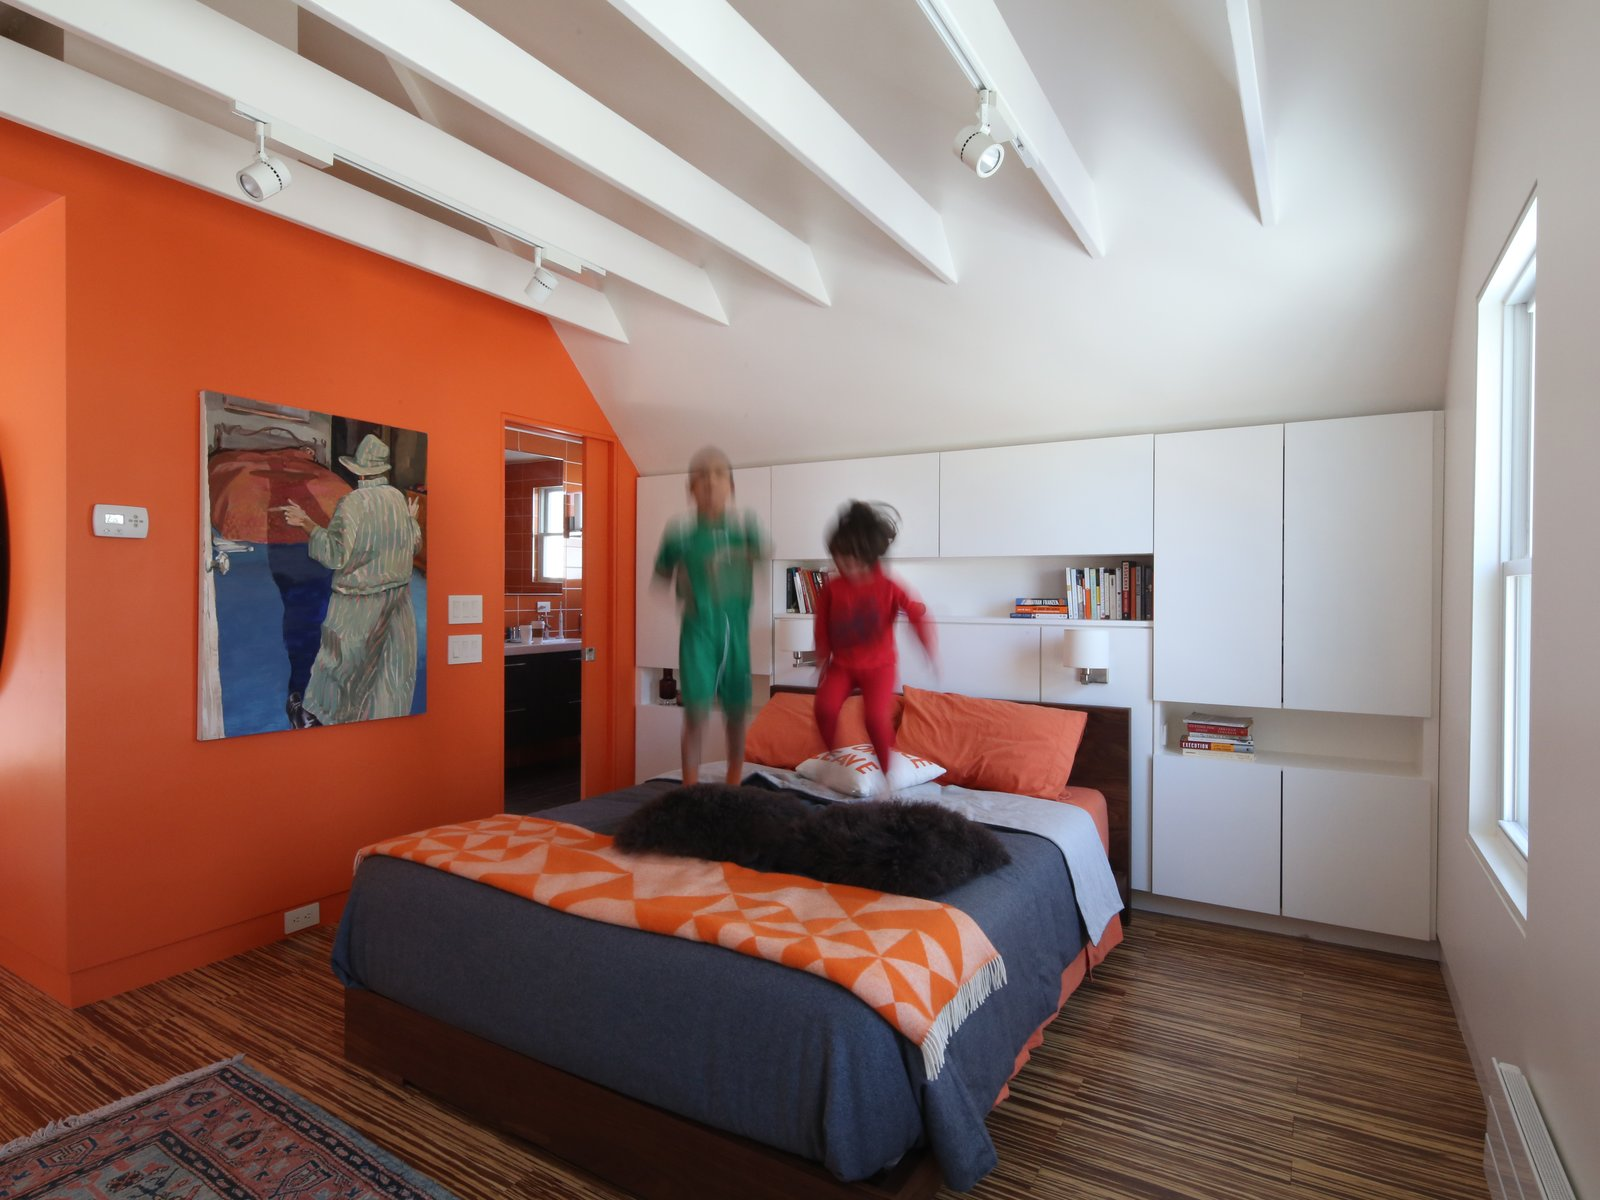 Residents Ethan and David gave architect Anne Barrett of 30E design one directive when renovating their attic space into a master suite: to make it feel like a refuge, their own private boutique hotel. Although an adult retreat was impossible after their children, Marly and Yandel, adopted it, the resulting colorful design is a true getaway. Photos courtesy 30E design  Bedroom by Dane Cupp from How To: Bright Bedroom Renovation